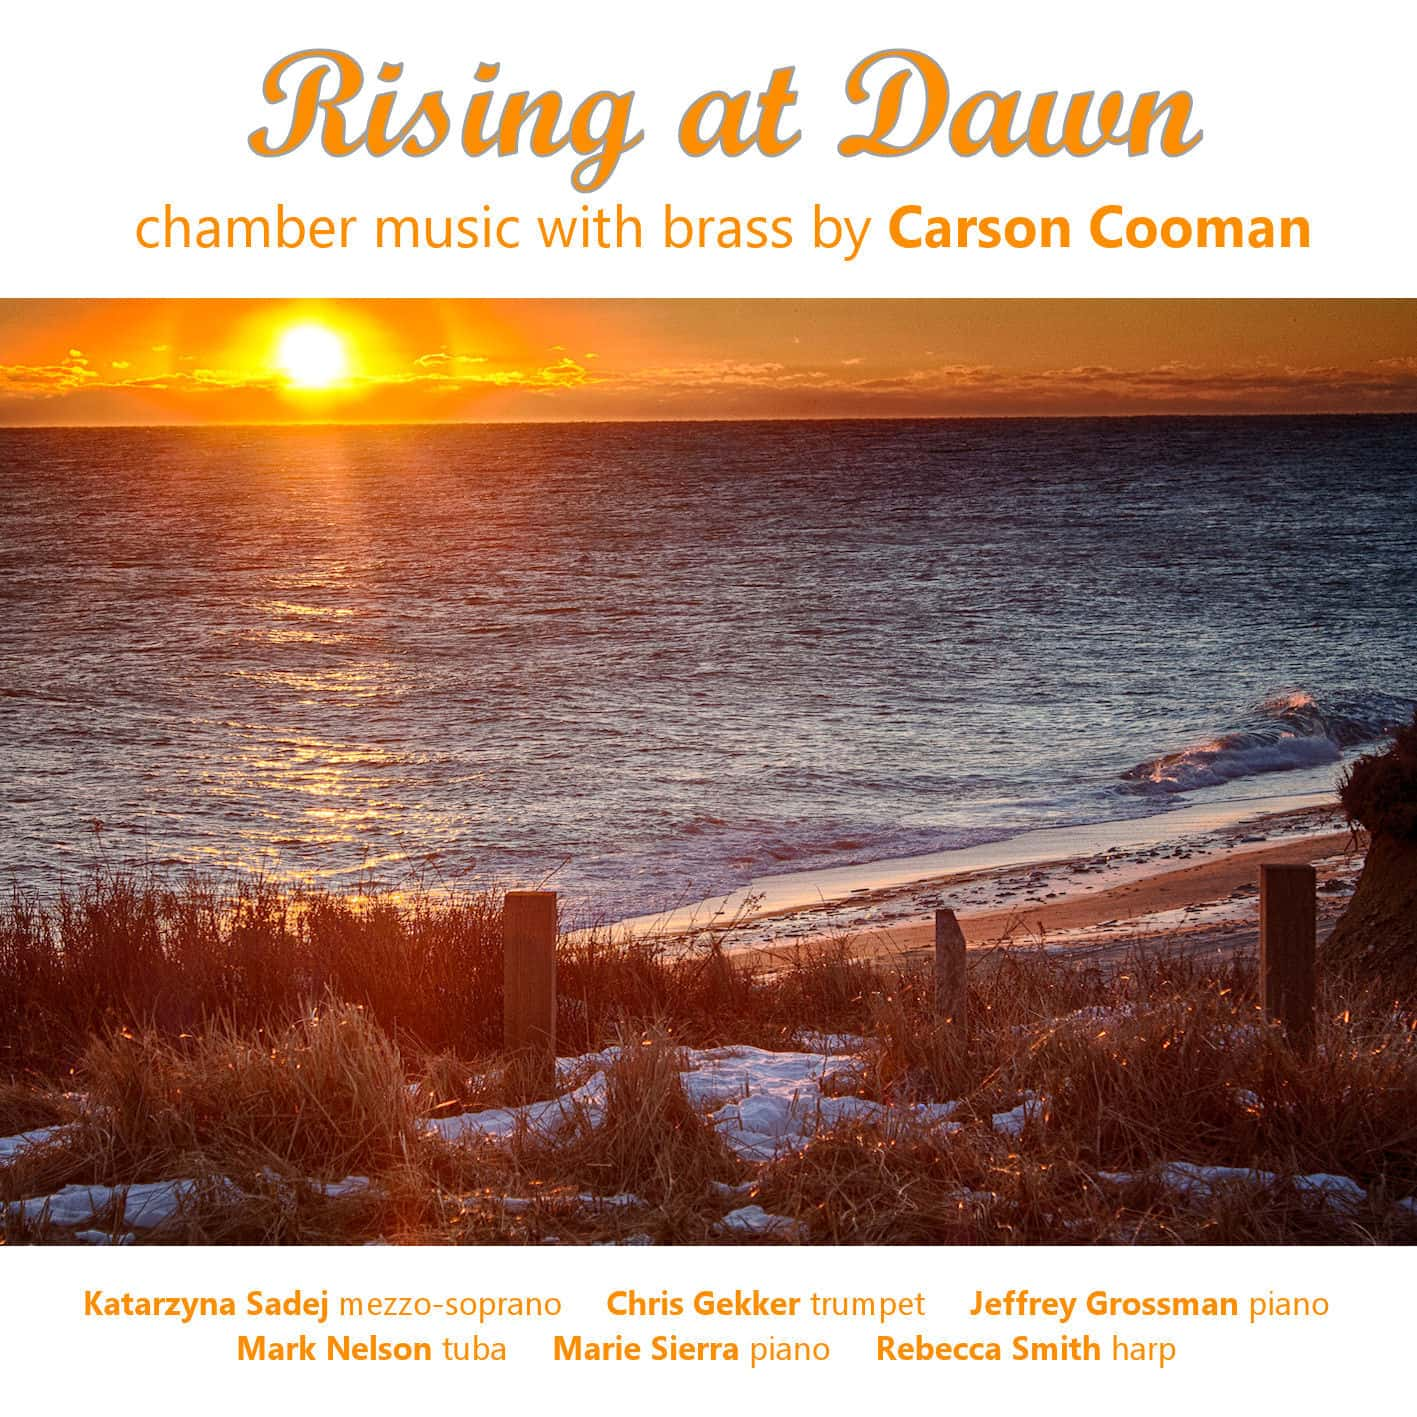 Rising at Dawn - Chamber Music with Brass by Carson Cooman